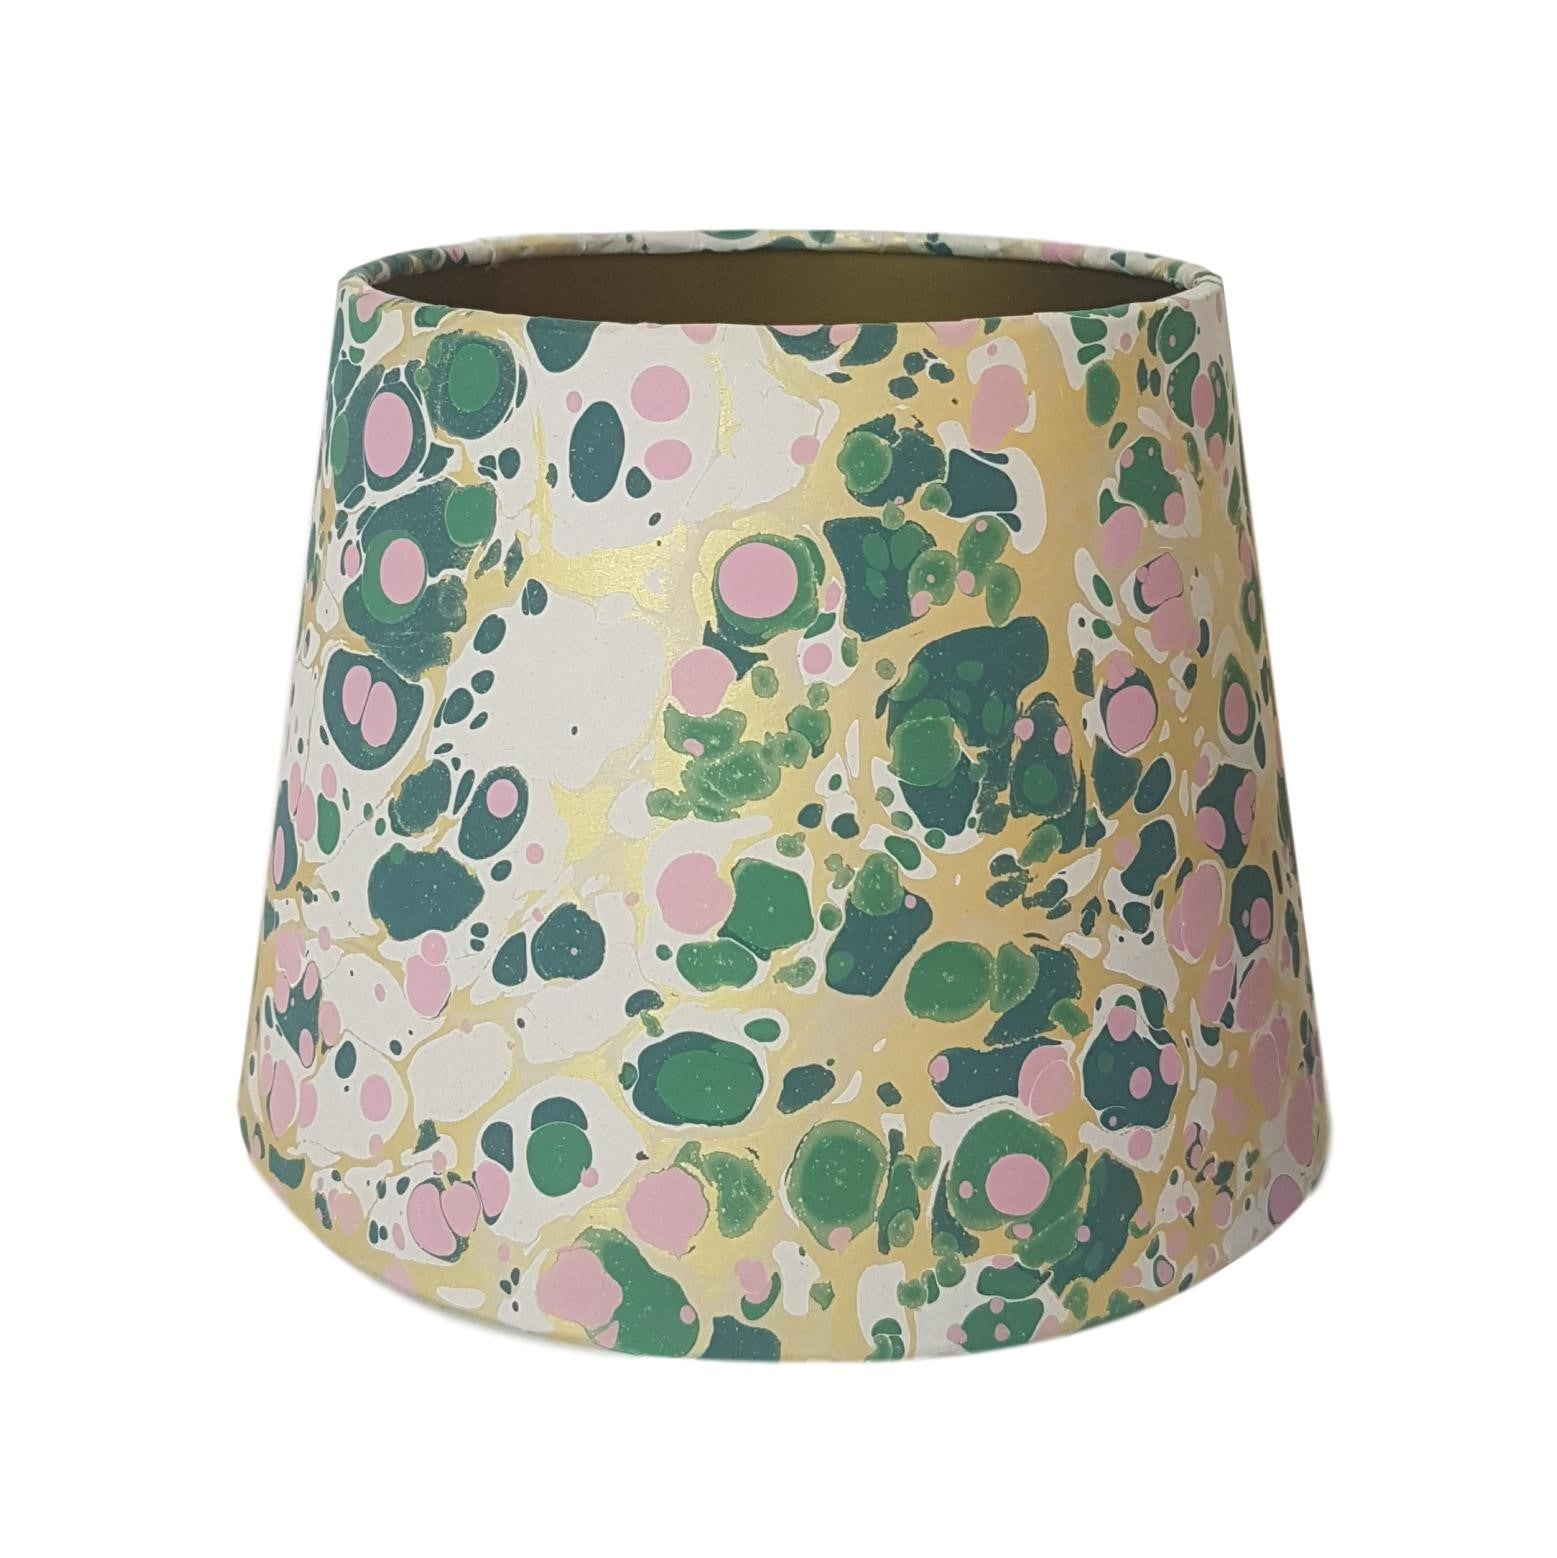 Munro and Kerr green pink and metallic gold marbled paper for an empire lampshade